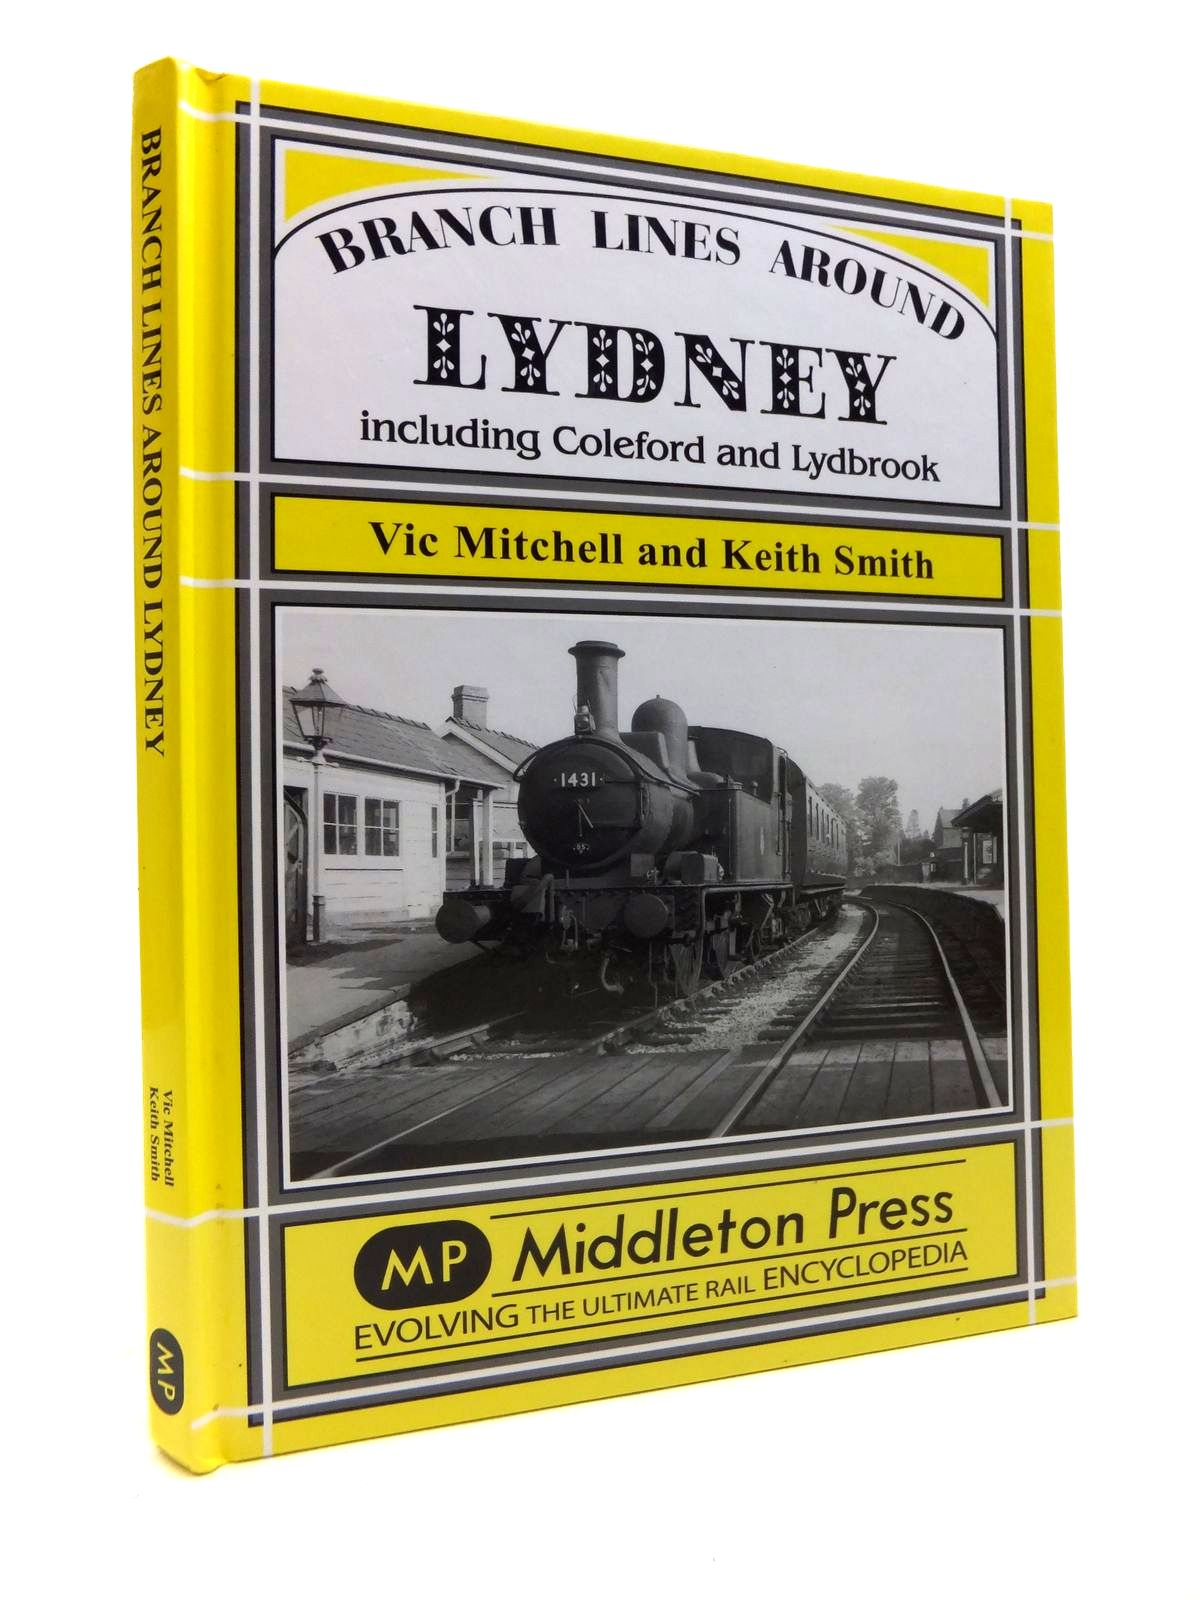 Photo of BRANCH LINES AROUND LYDNEY written by Mitchell, Vic Smith, Keith published by Middleton Press (STOCK CODE: 1811923)  for sale by Stella & Rose's Books